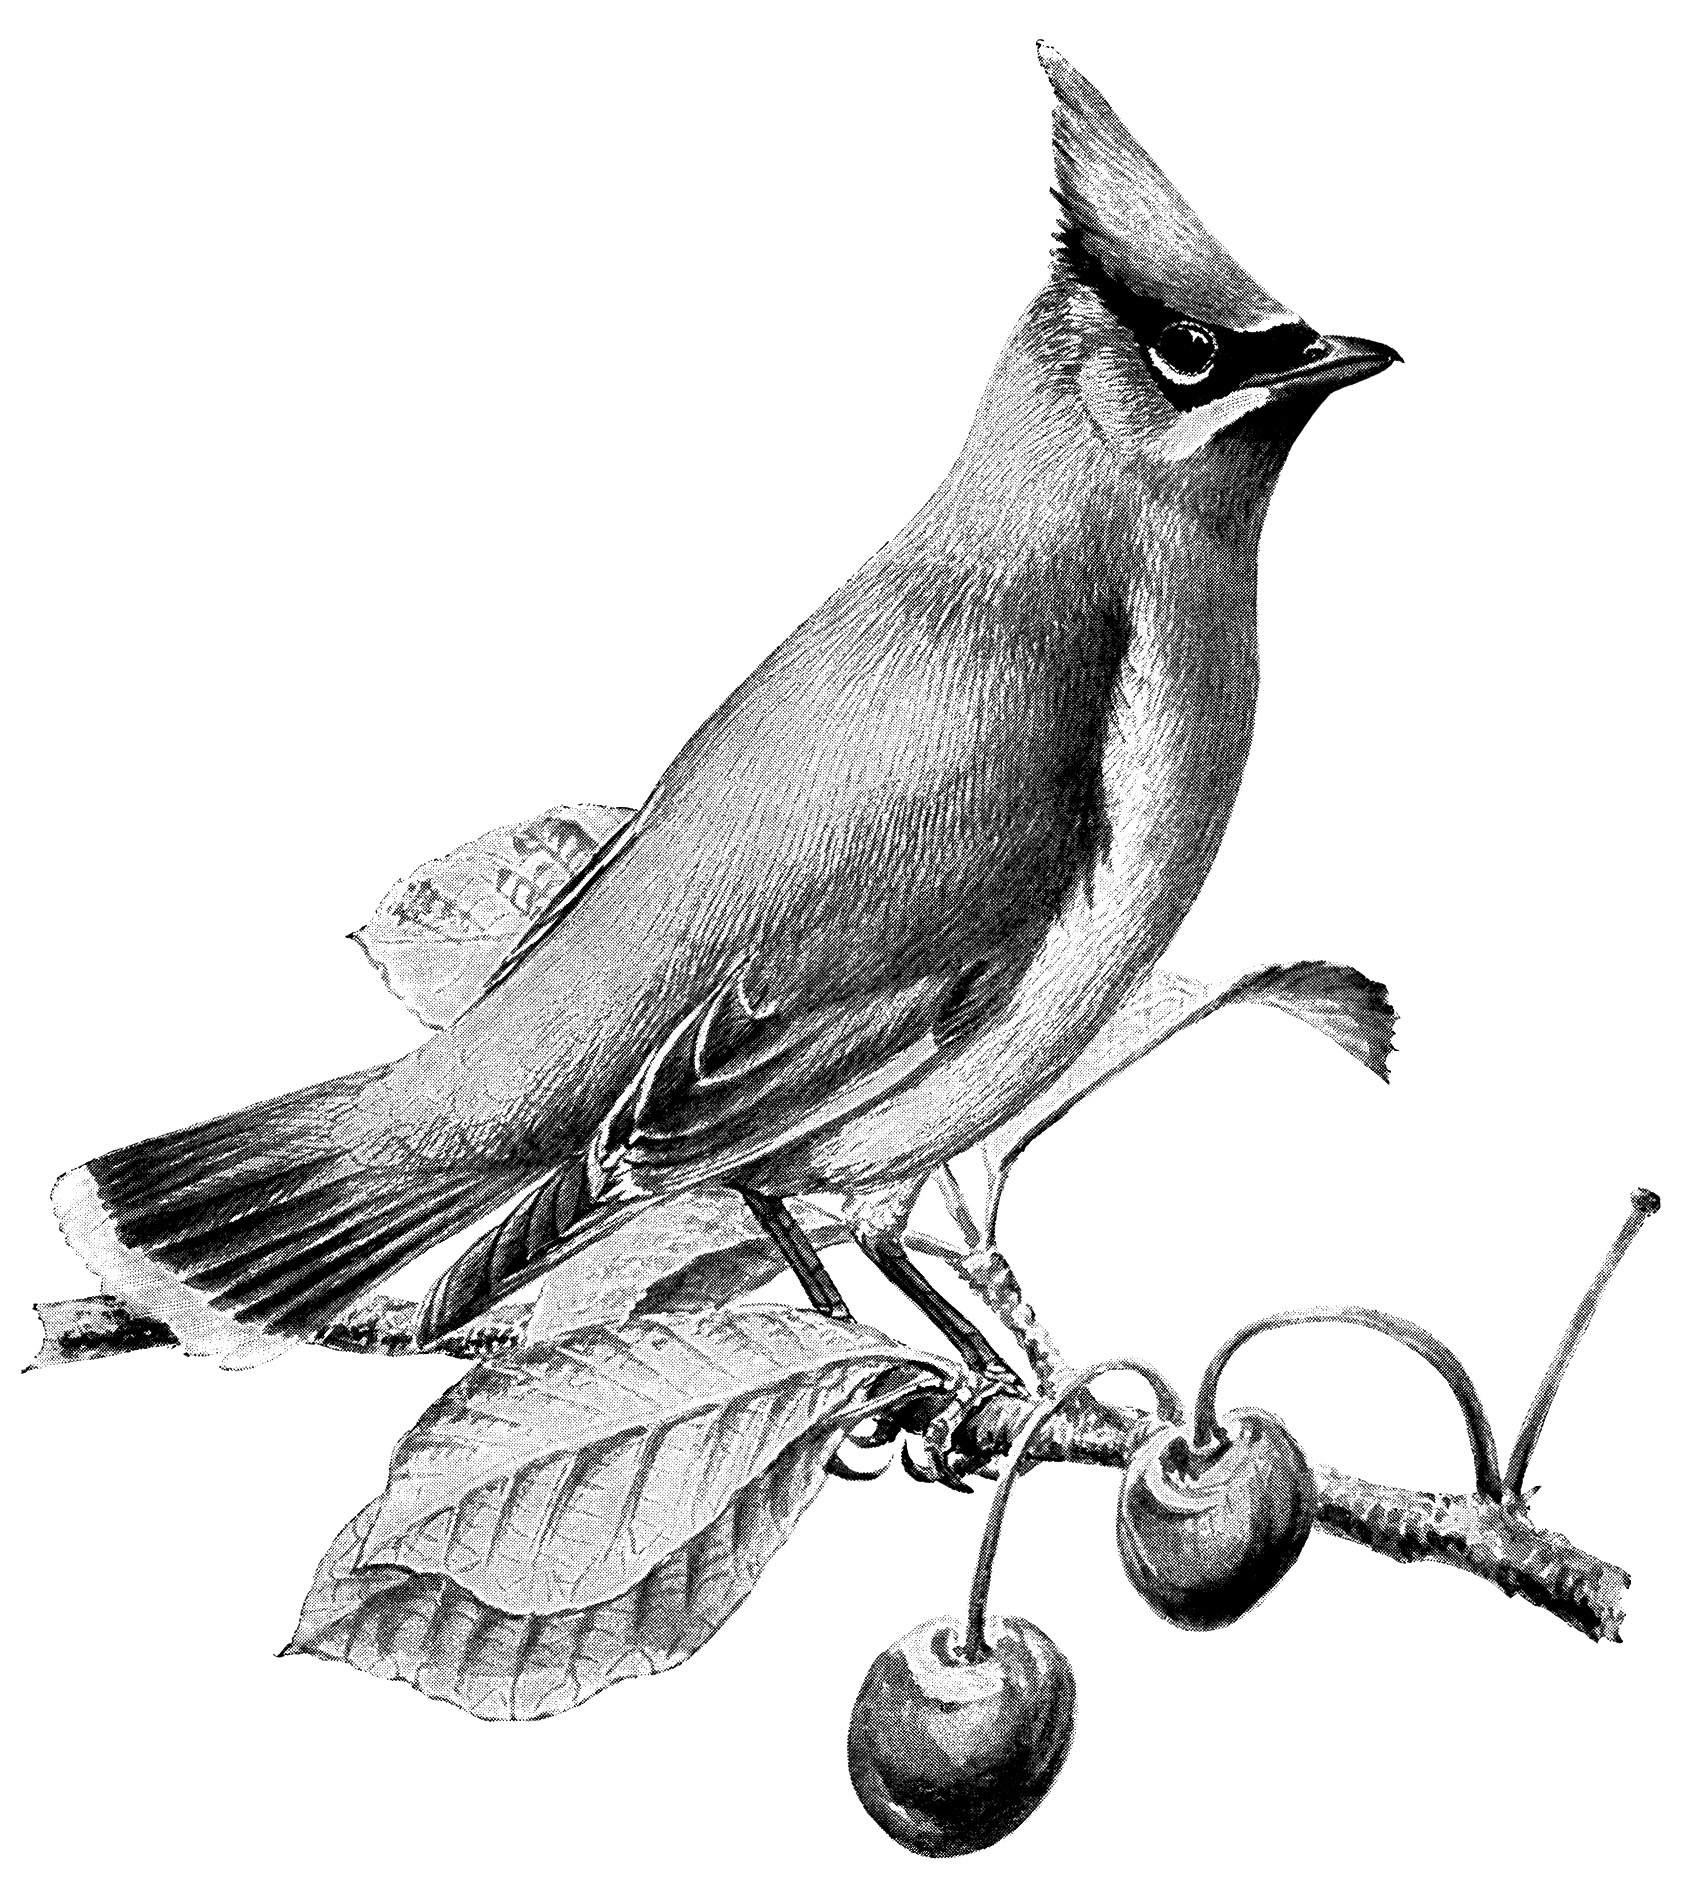 vintage bird clip art, cedar waxwing, black and white graphics, printable bird illustration, bird on cherry branch, Louis Agassiz Fuertes